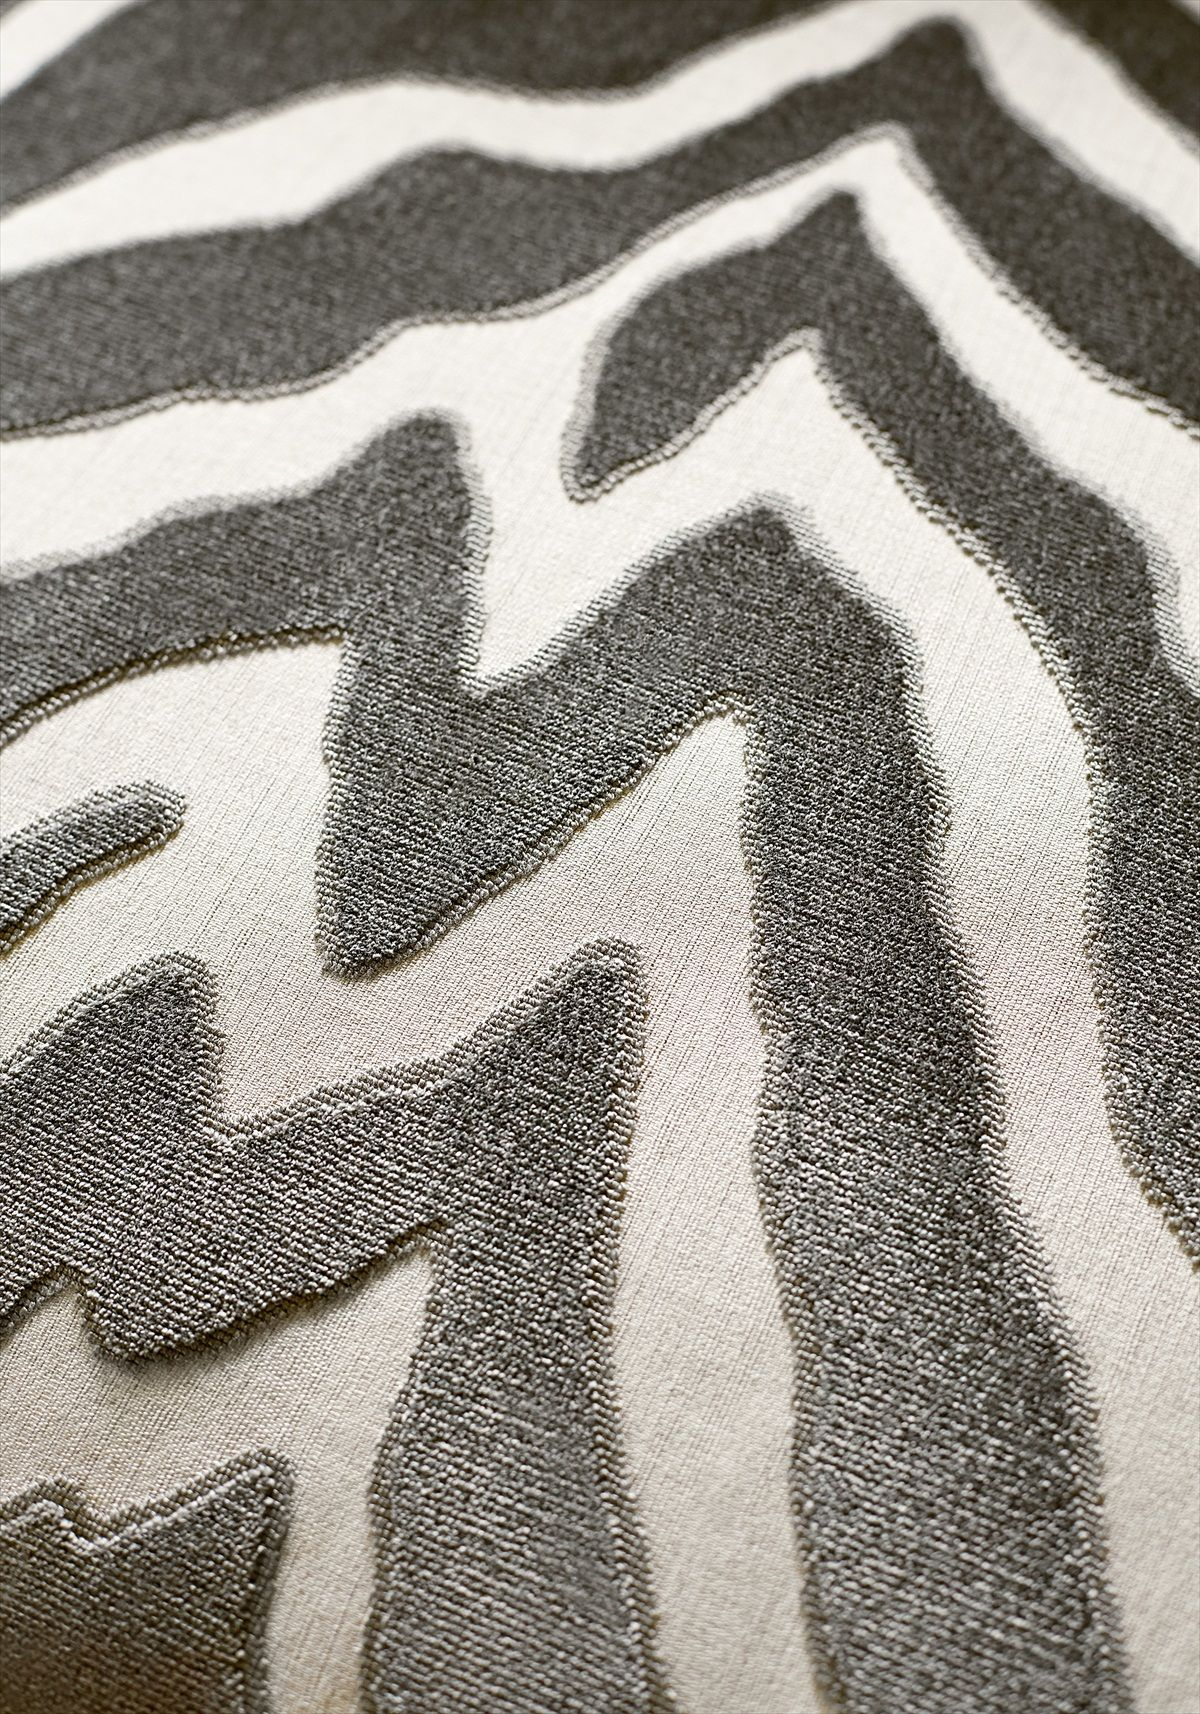 Thibaut Etosha Velvet Graphite Fabric W80404 Is Zebra Animal Print Included In Menagerie Range Of Fabrics Which A